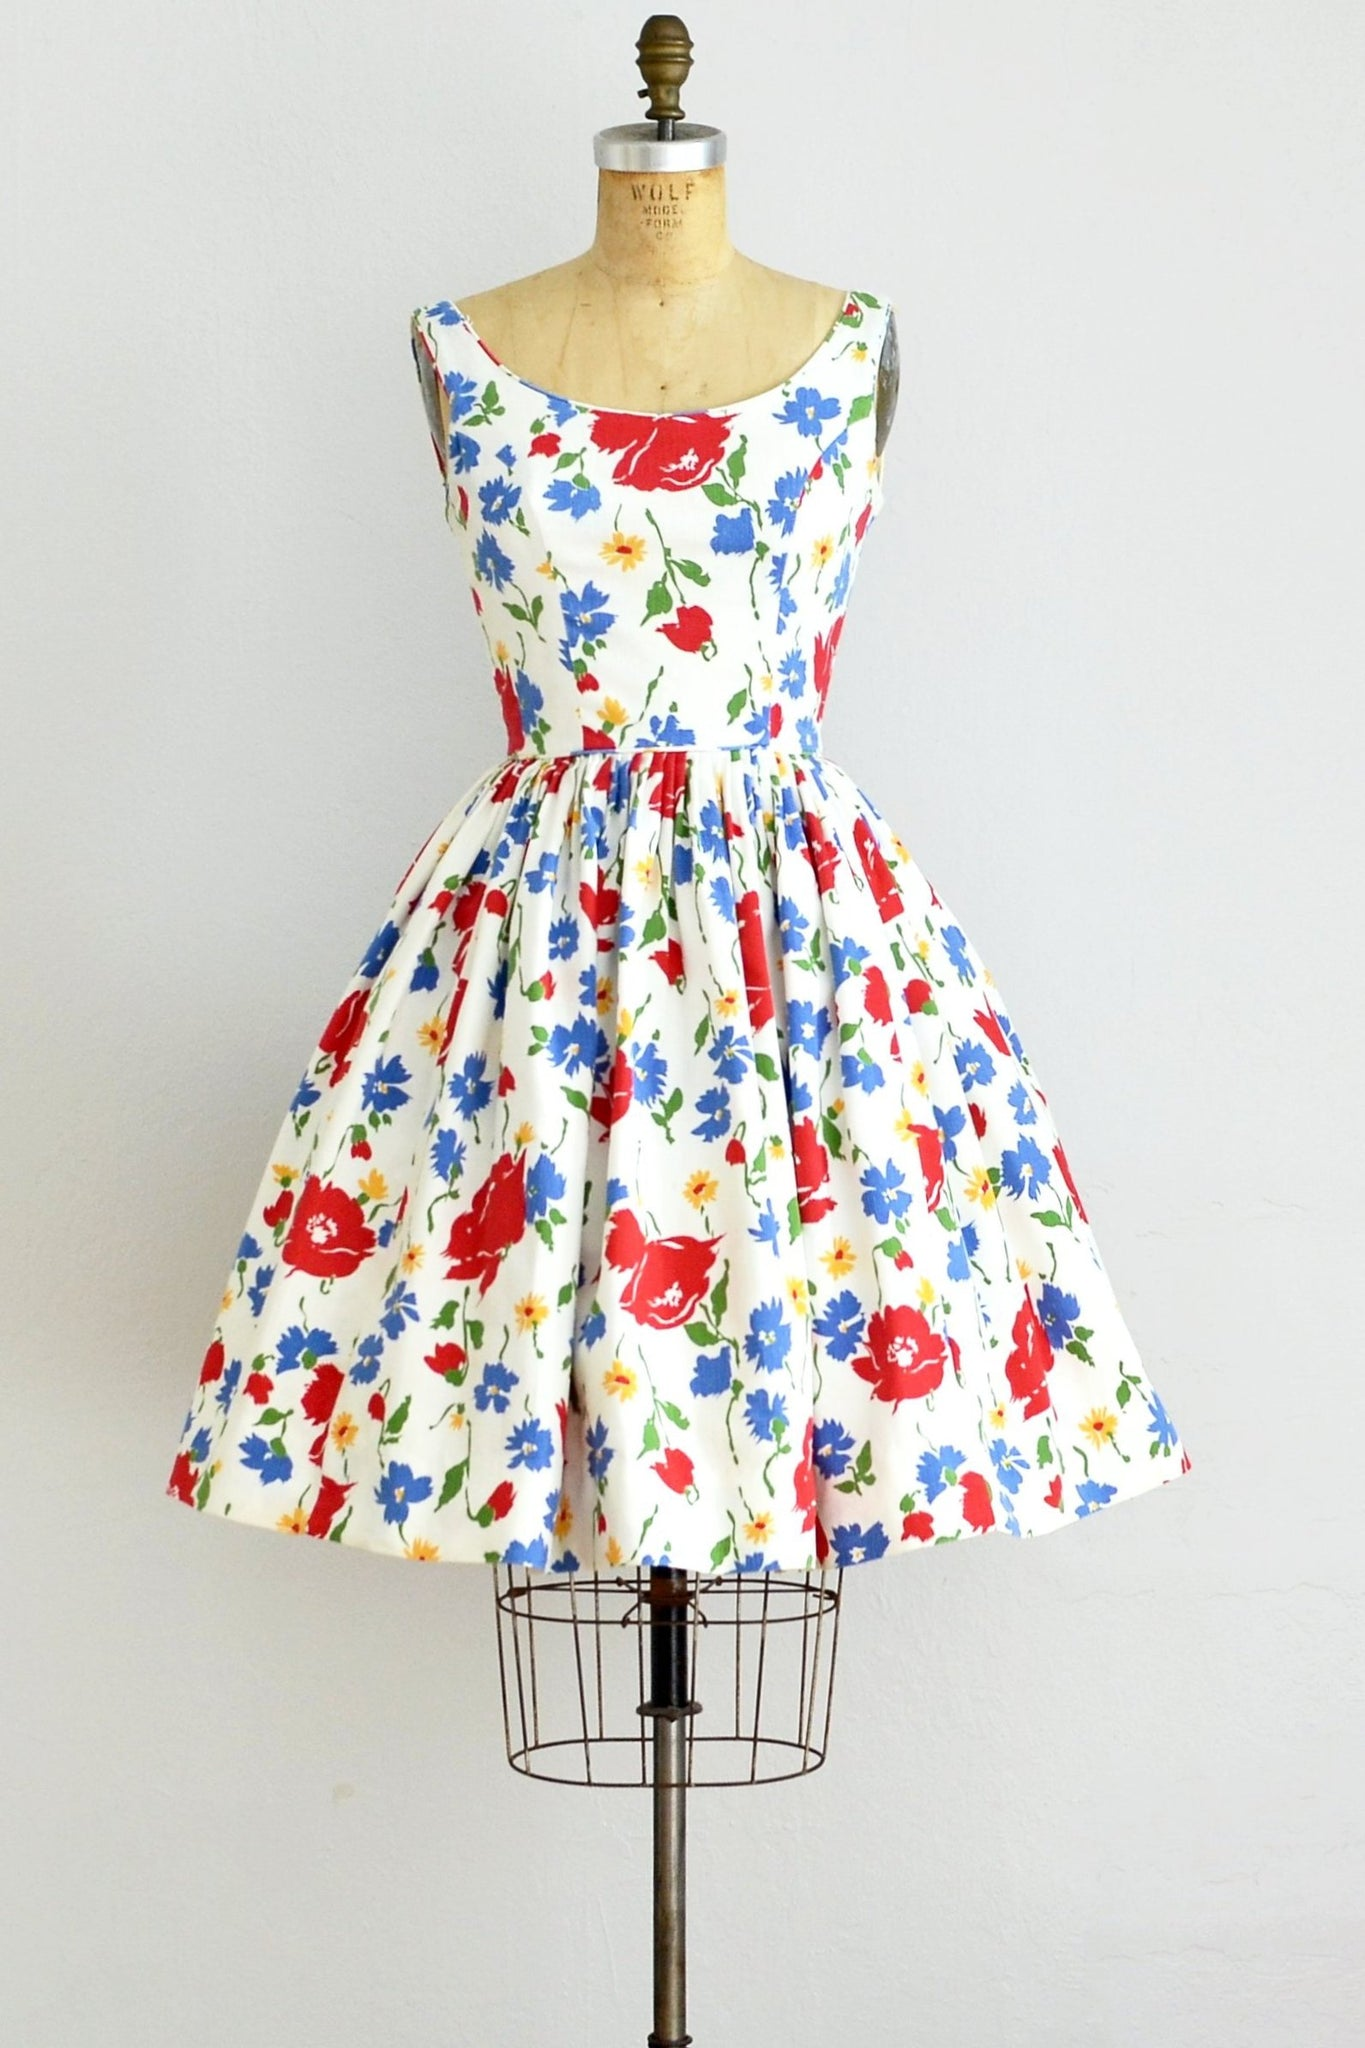 Jonathan Logan Floral Dress - Pickled Vintage